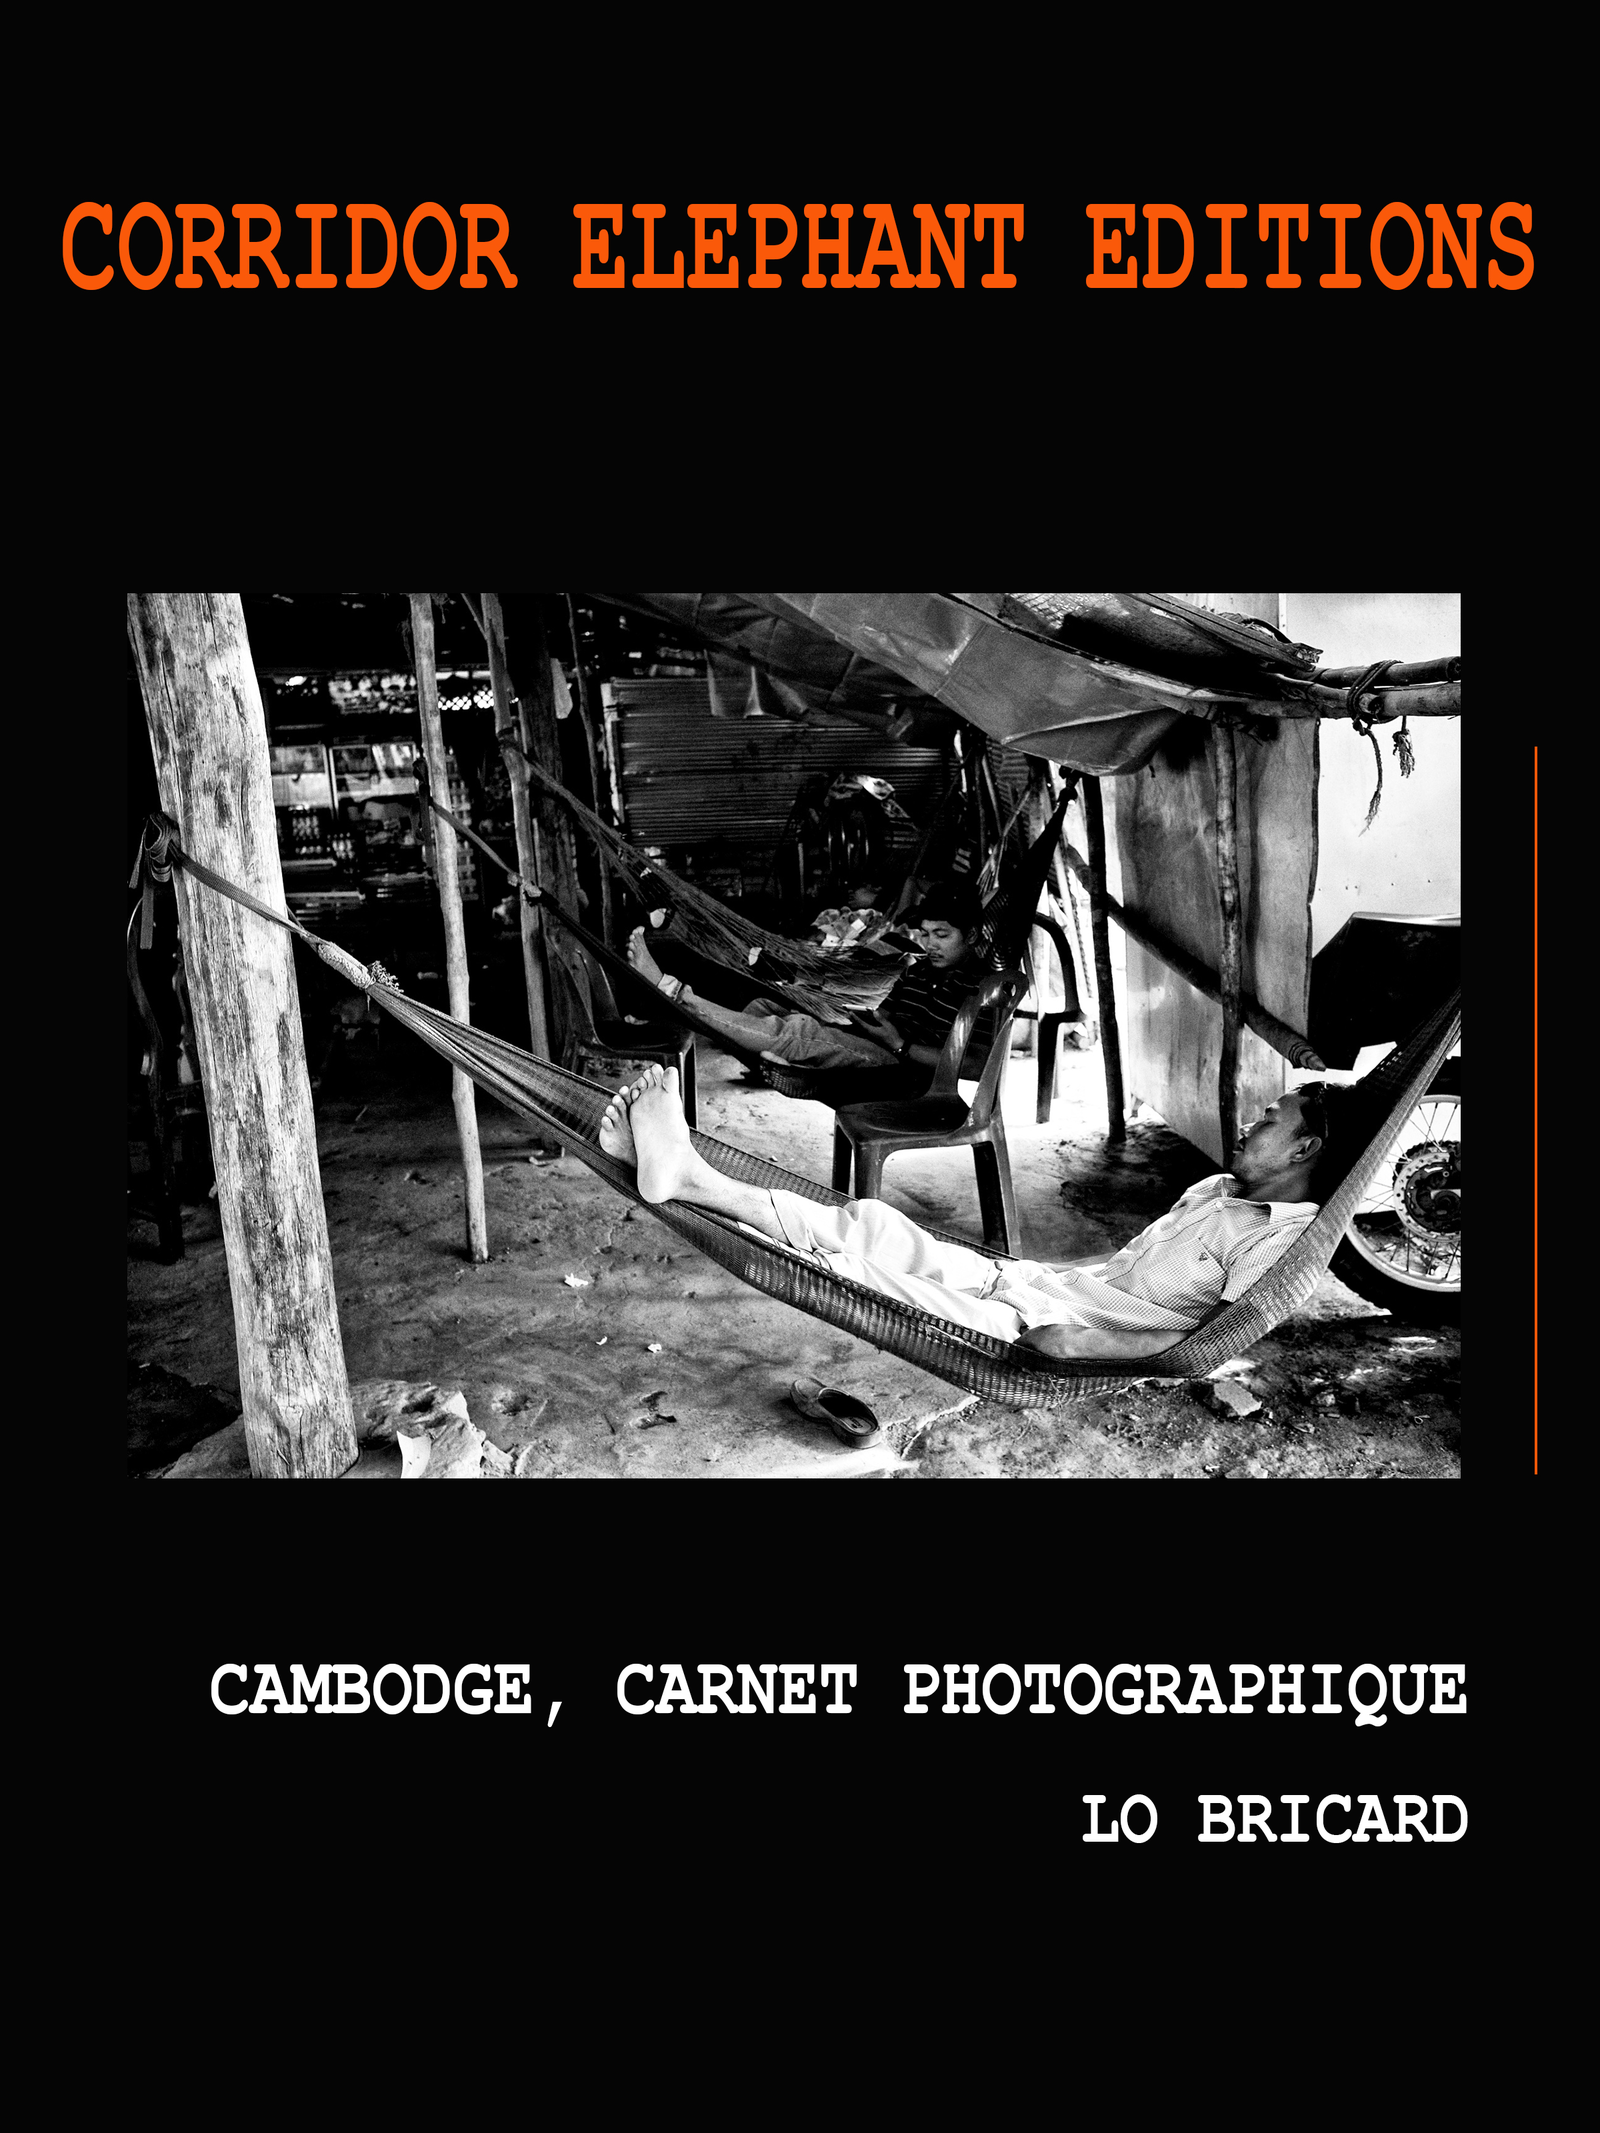 Cambodge, carnet photographique